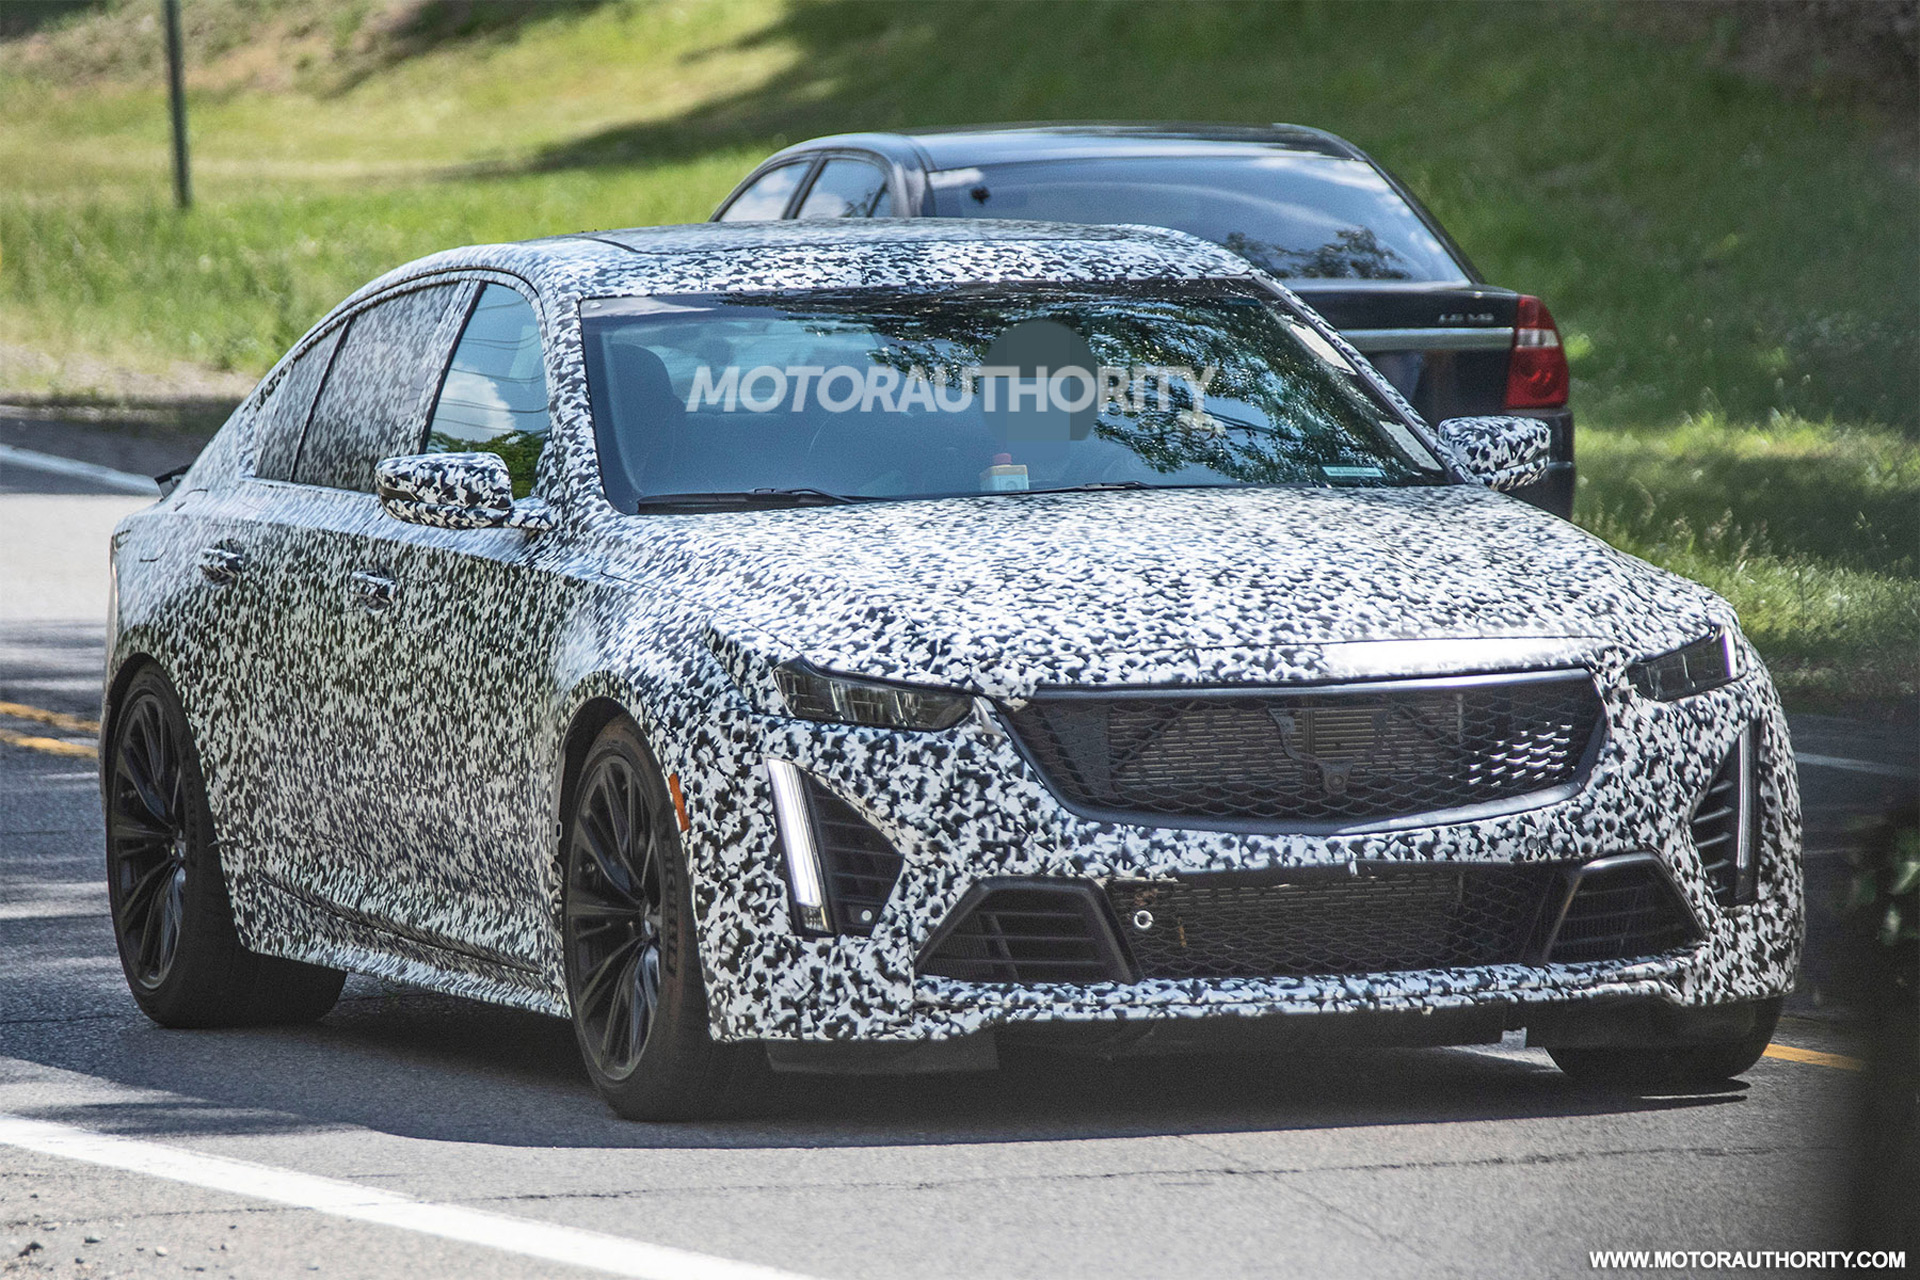 3 Cadillac CT3-V Blackwing spy shots and video